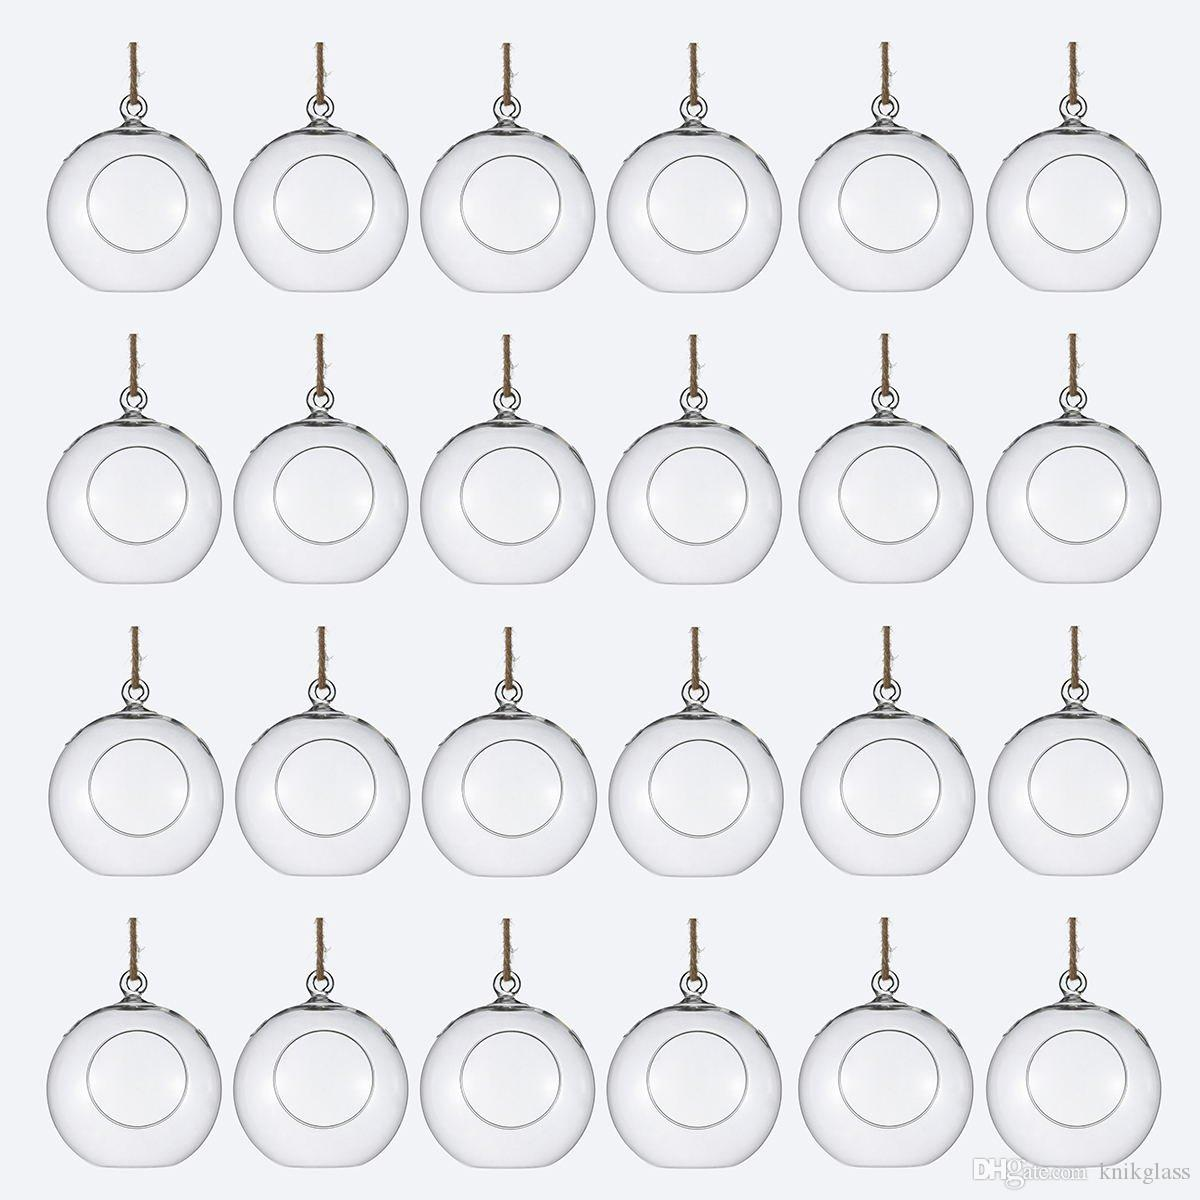 Package of 24 Clear Glass Orbs Terrarium Hanging Glass Candle Holders 8 CM Tea Light Holders Use For Succulent Gardening or Wedding Decorati